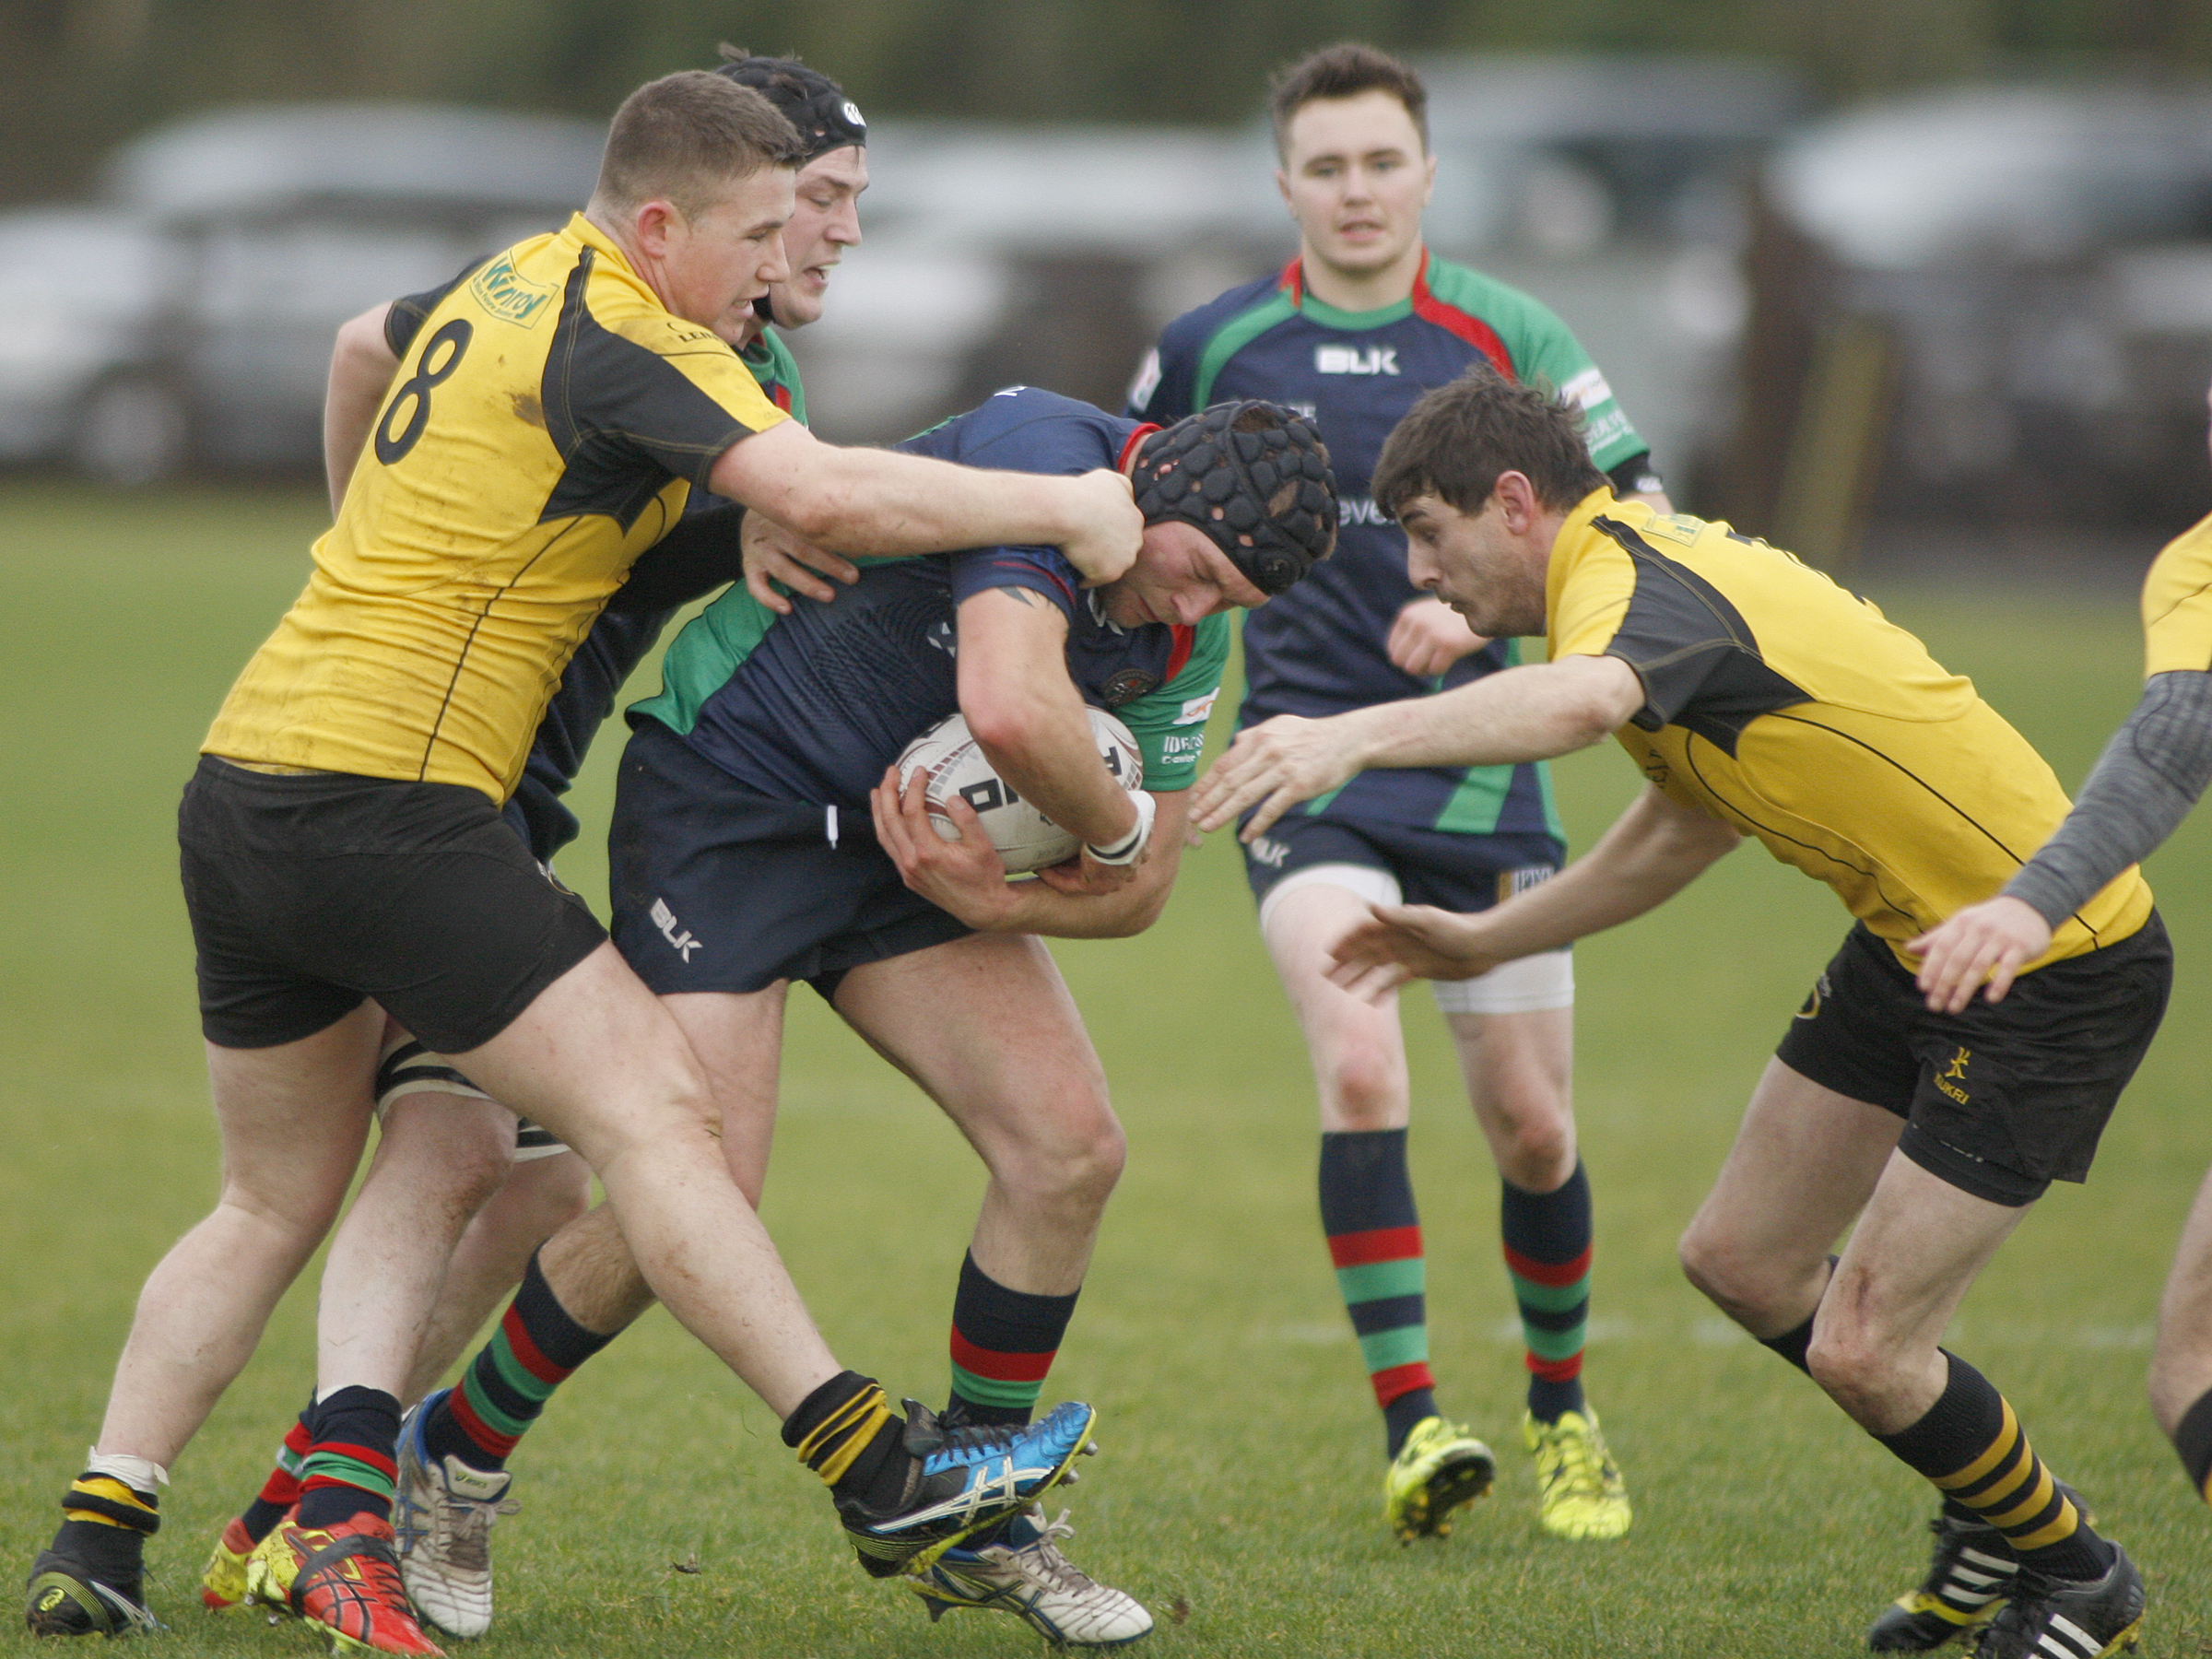 Clogher Valley's Nathan Orr takes the direct route towards the Ashbourne try line.